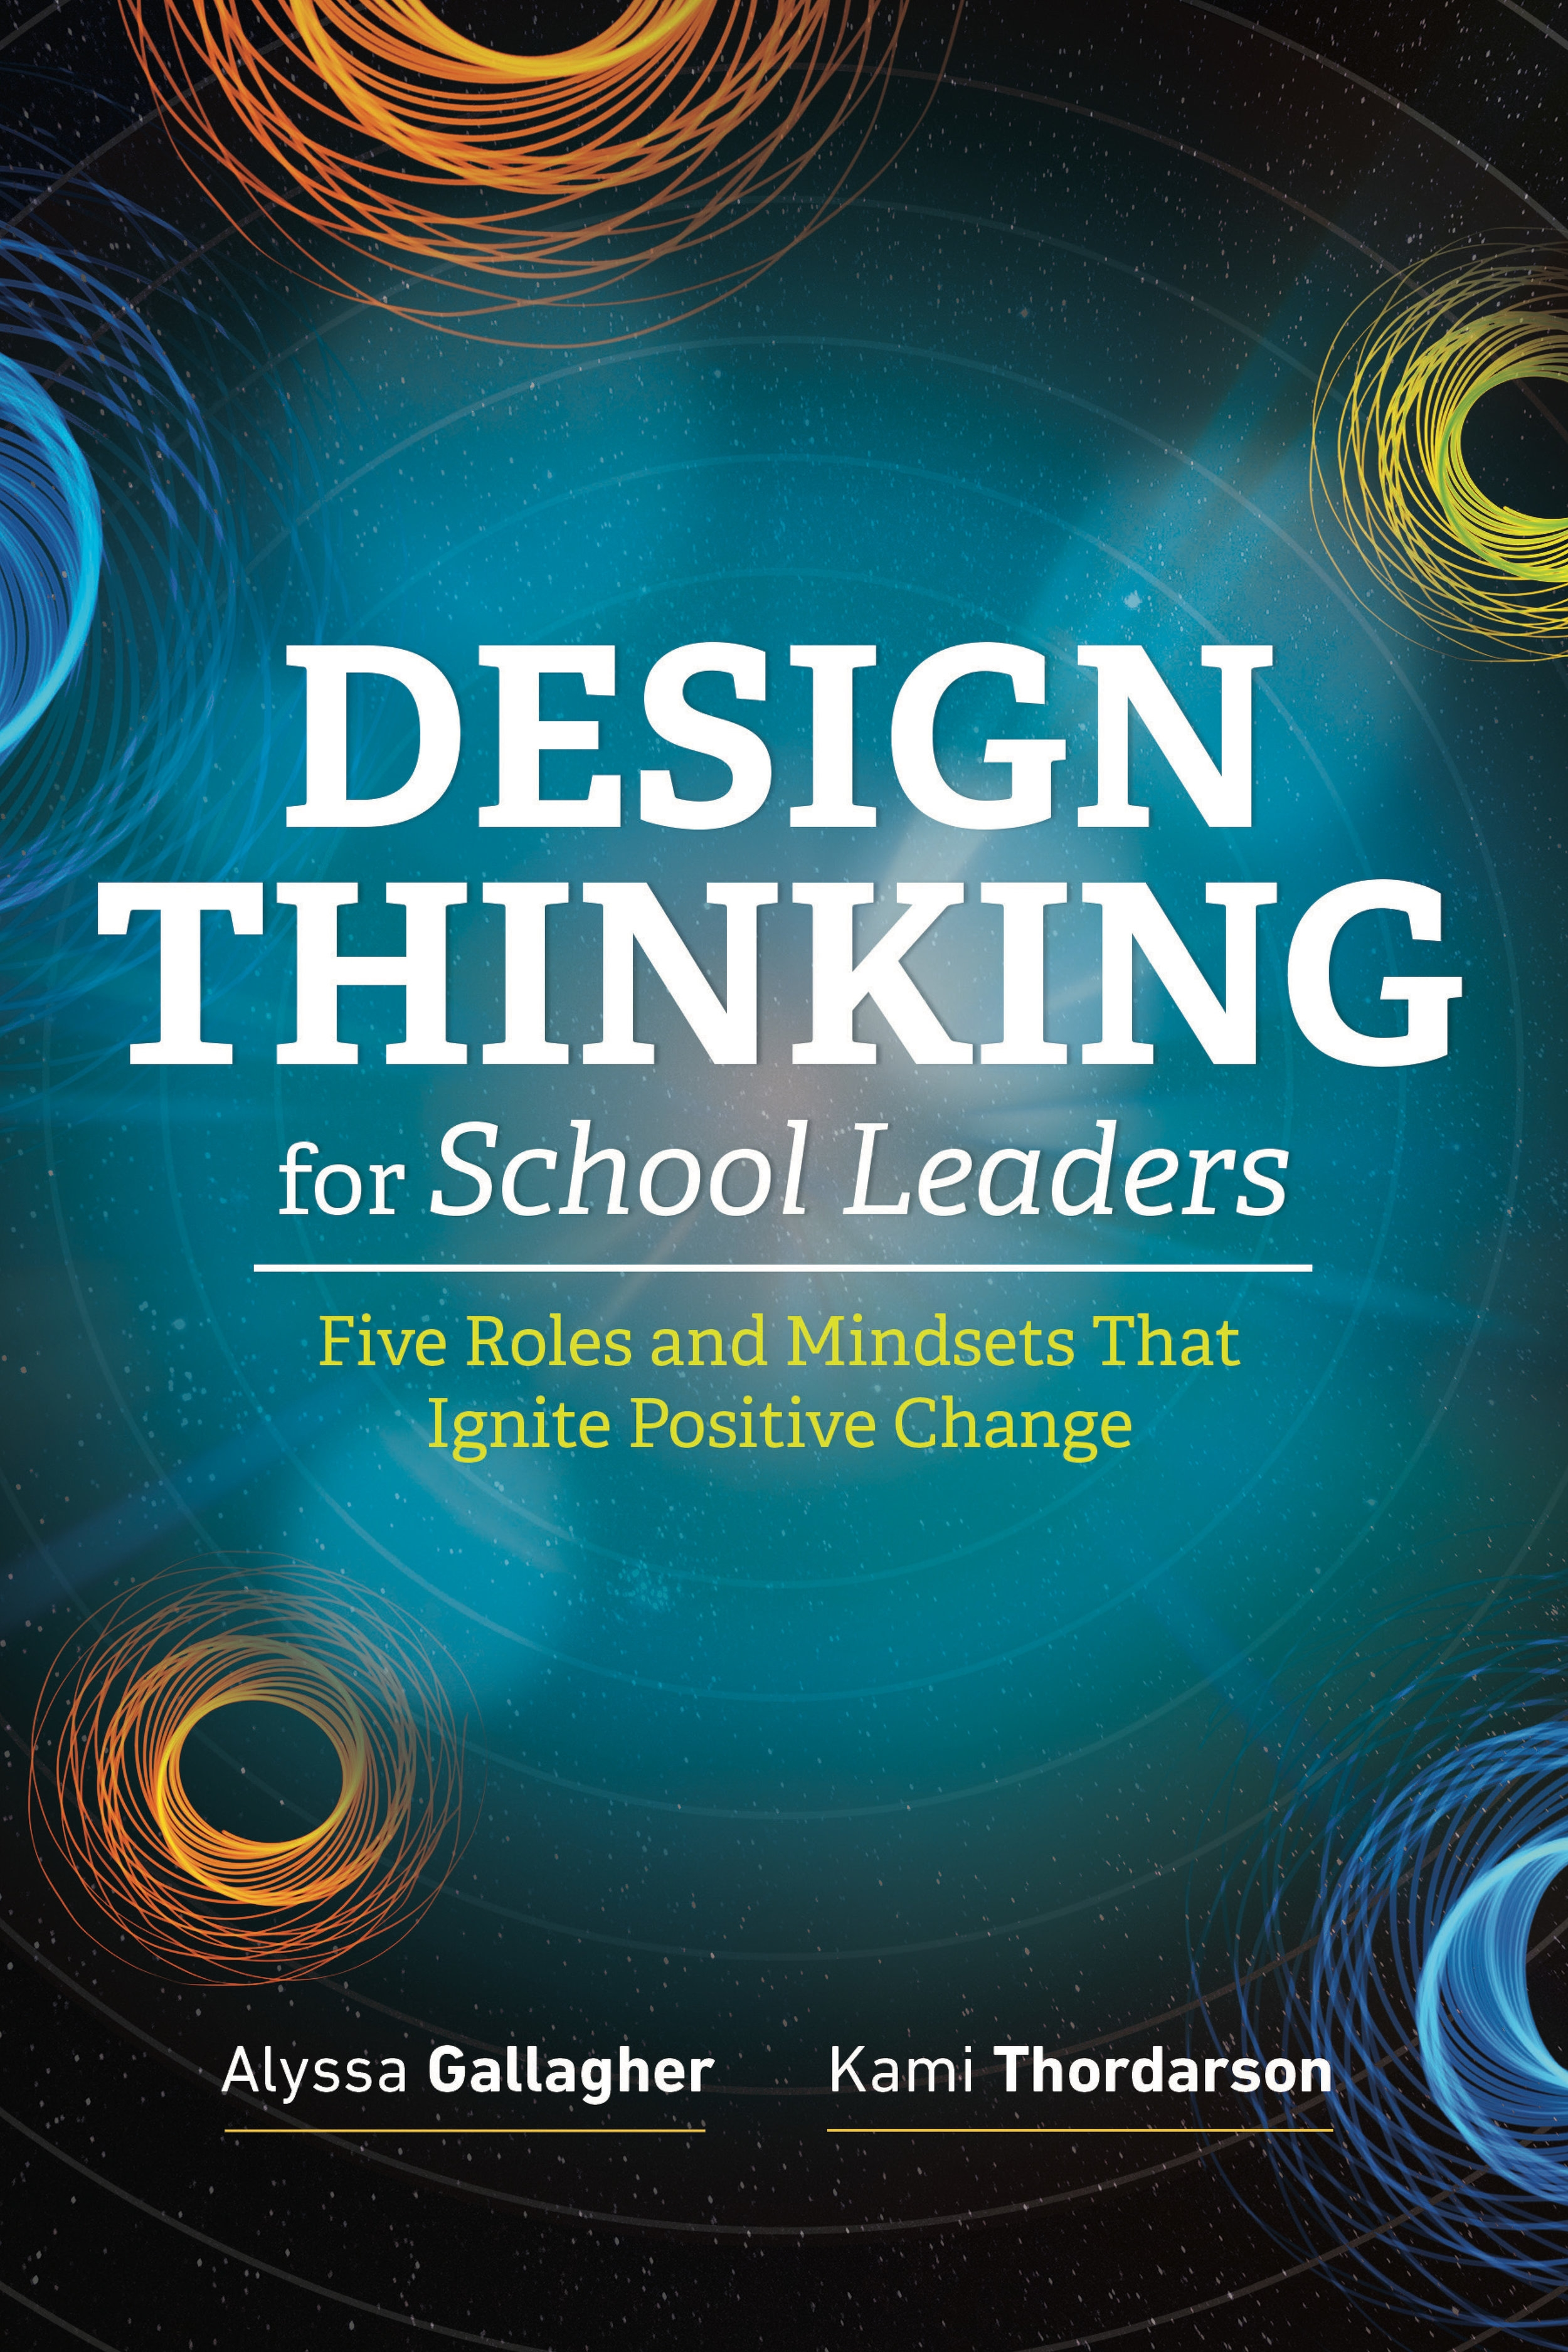 - Design Thinking for School Leadersexplores the changing landscape of leadership and offers practical ways to reframe the role of school leader using Design Thinking, one step at a time. Leaders can shift from